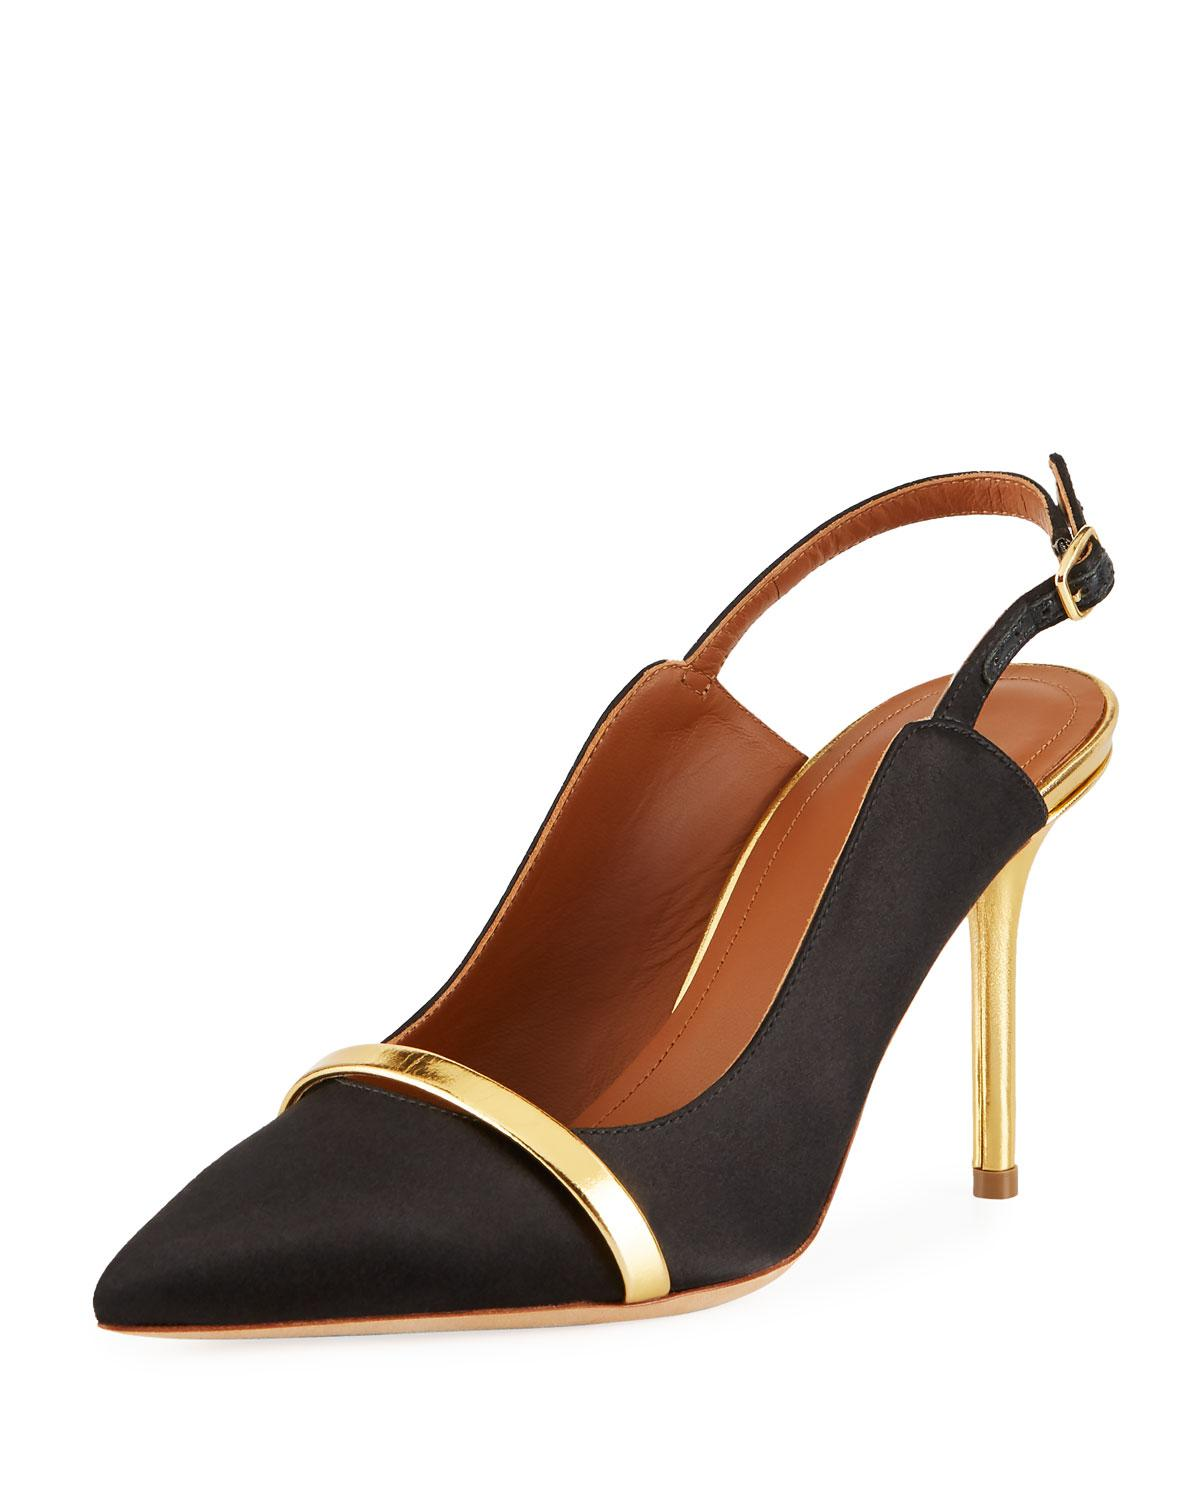 7bc690274 Malone Souliers Marion 85mm Slingback Pumps in Black - Lyst